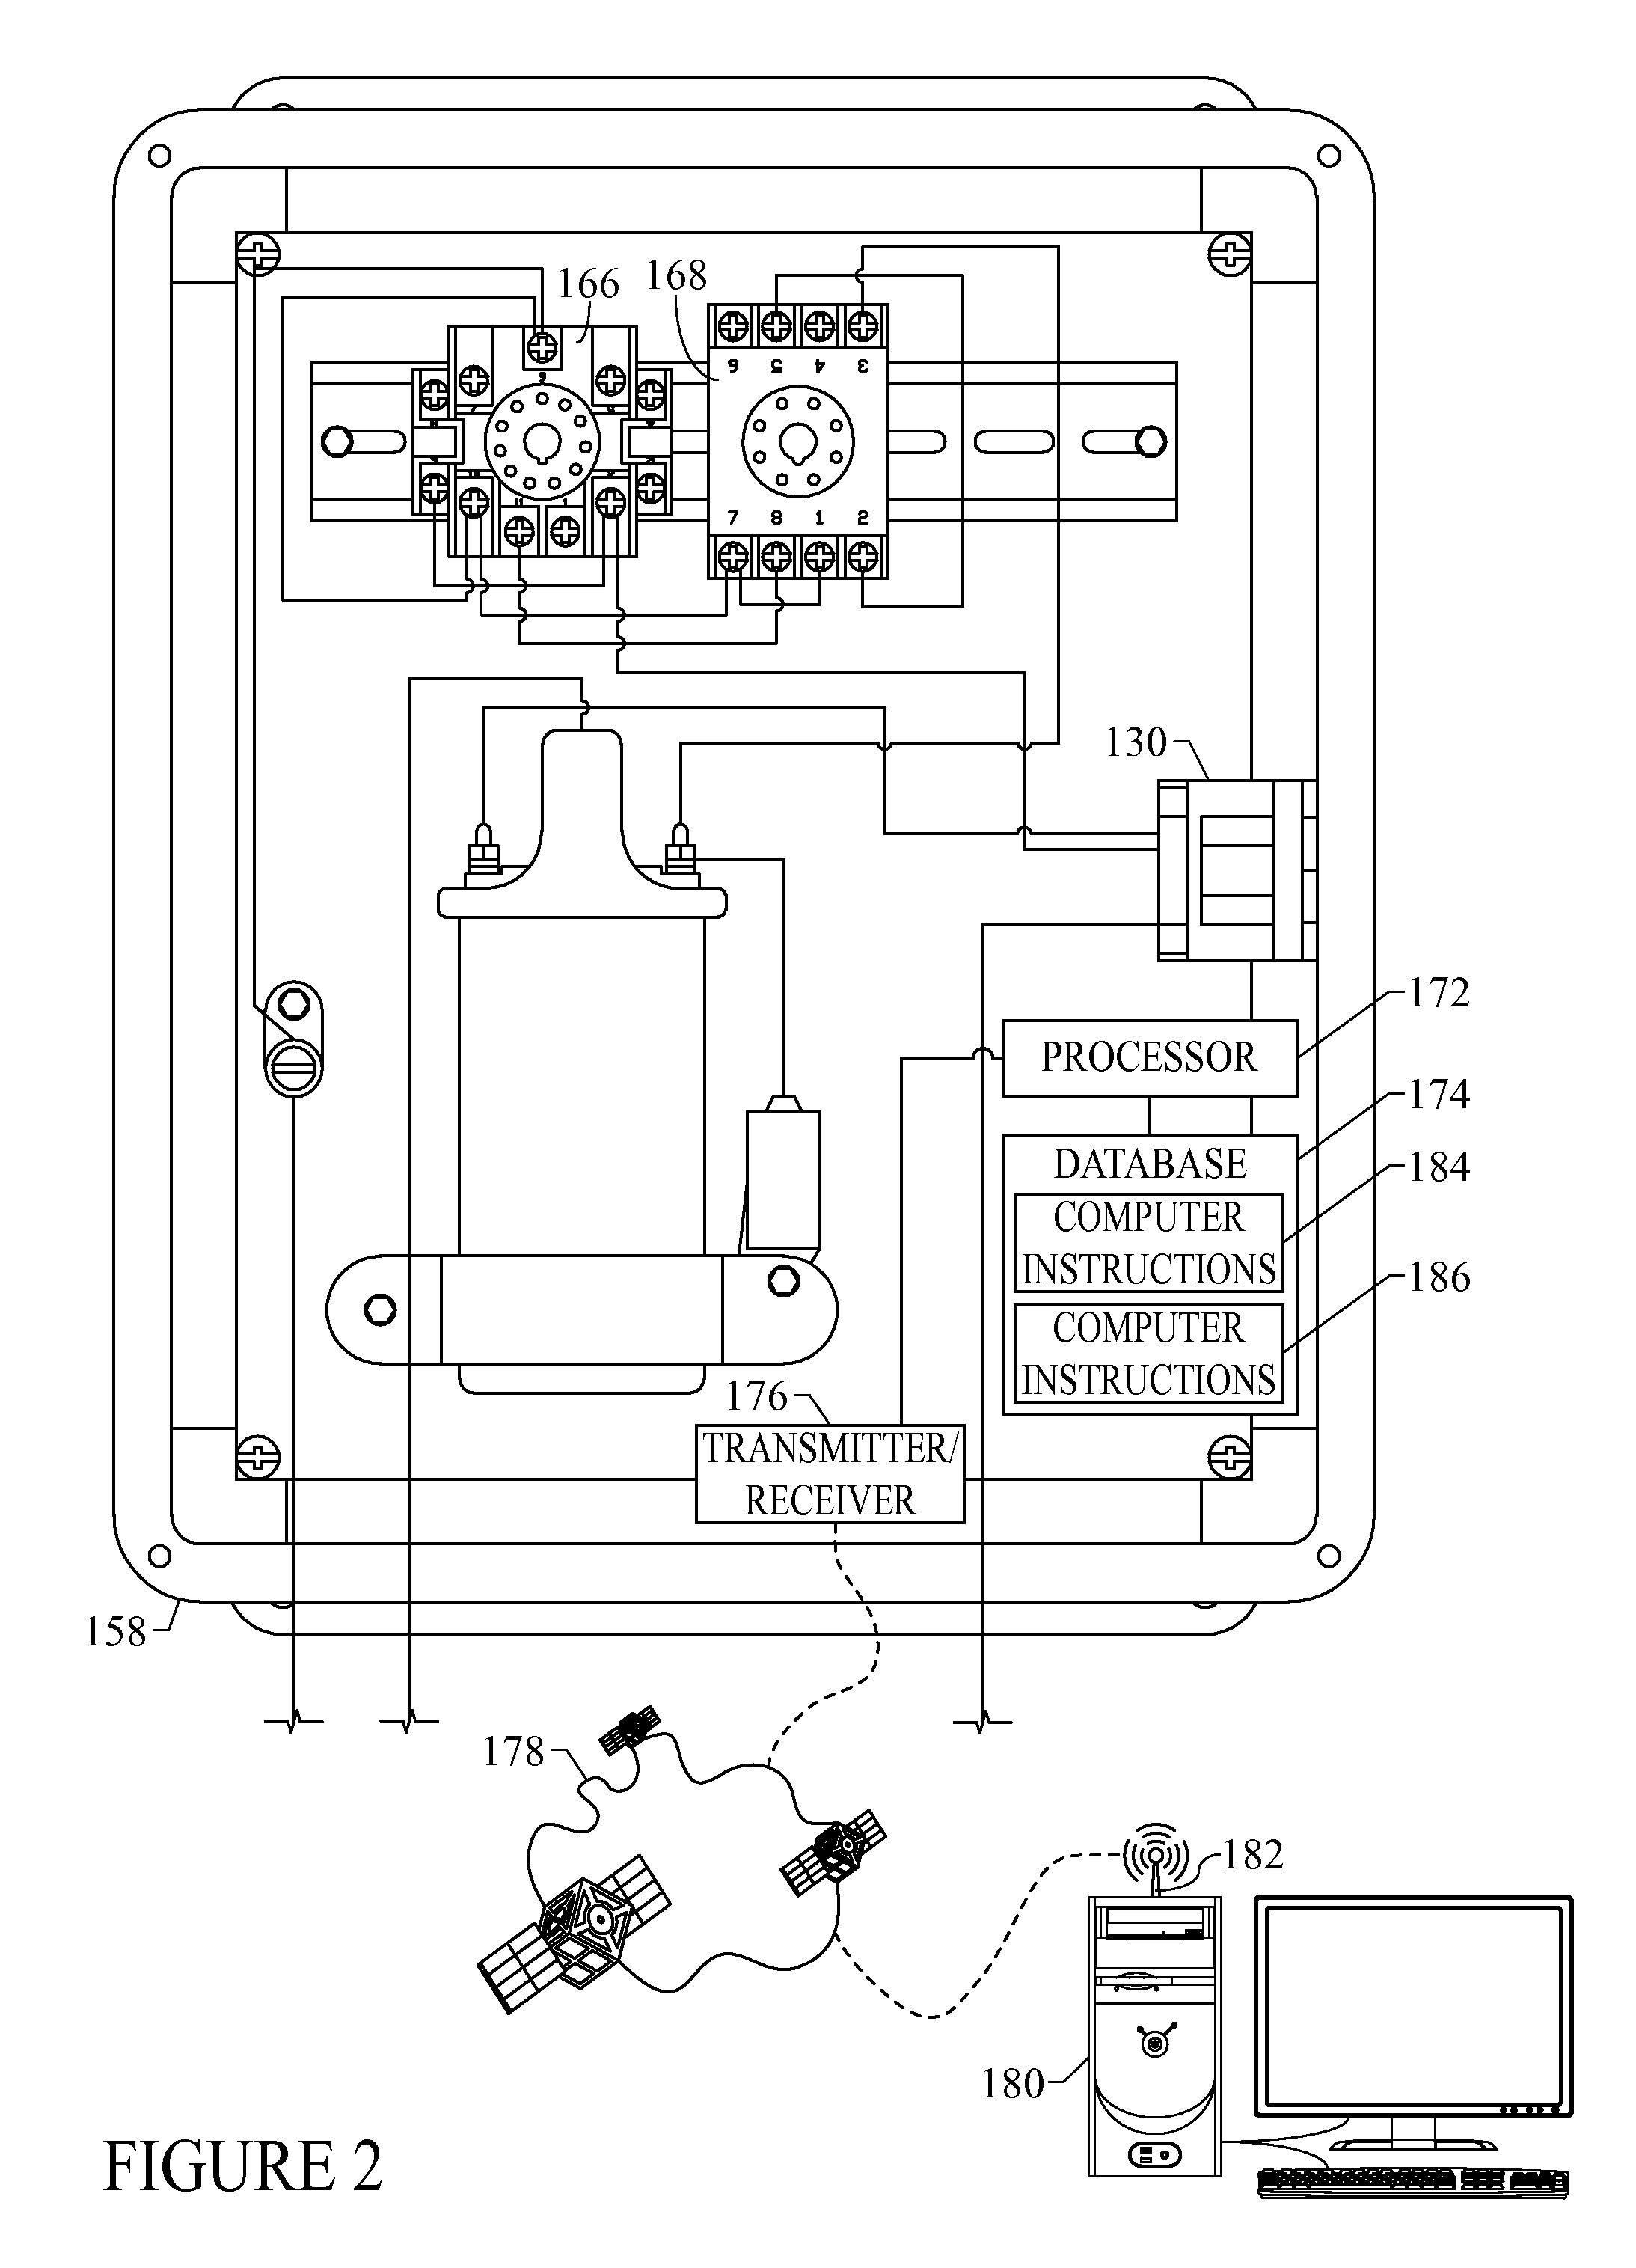 patent us8390981 - flare ignition apparatus